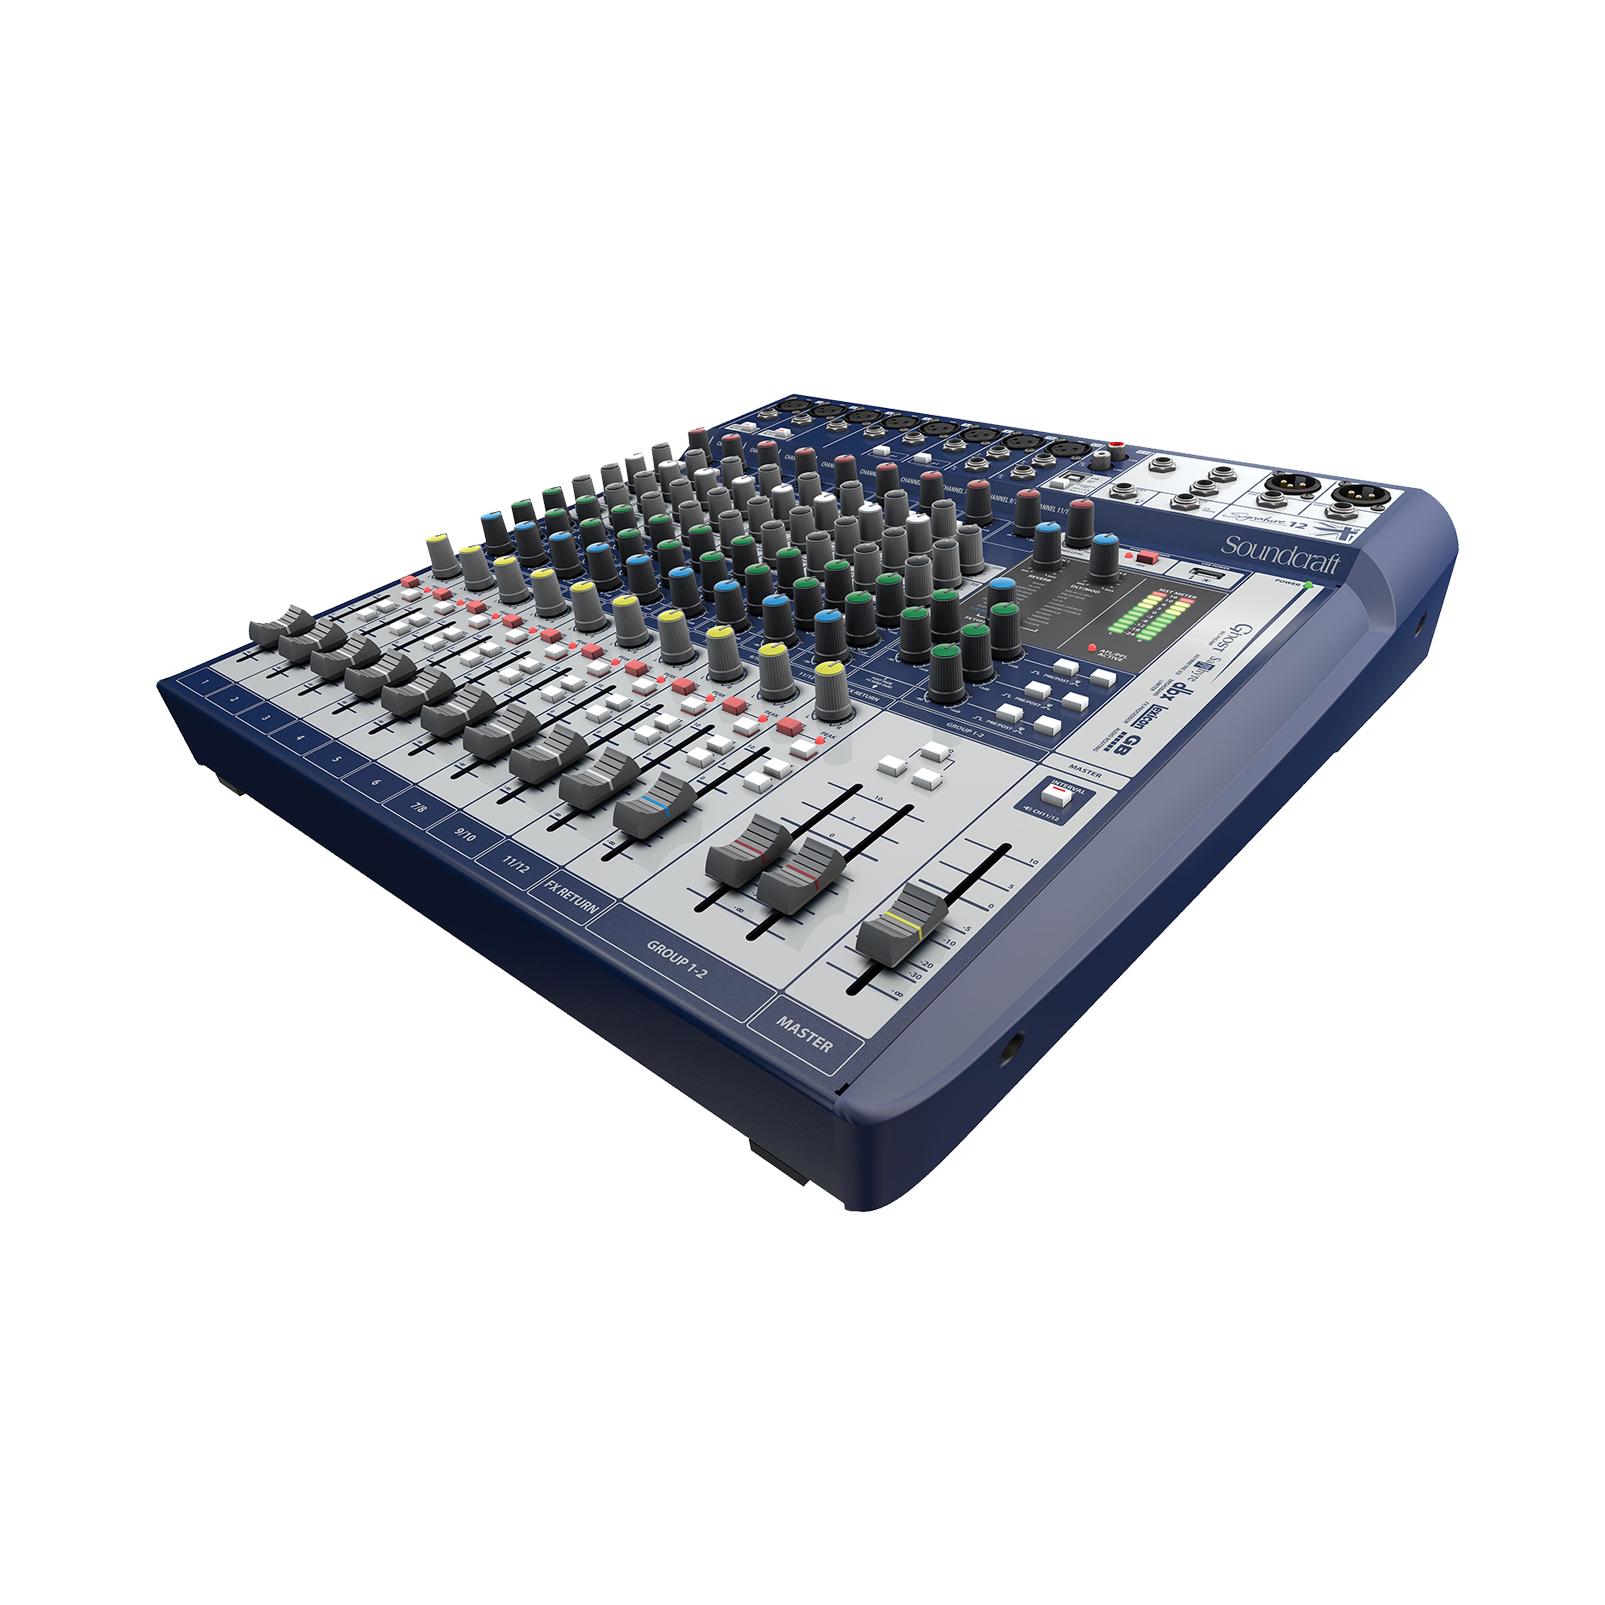 Signature 12 - Dark Blue - 12-input small format analogue mixer with onboard effects - Hero